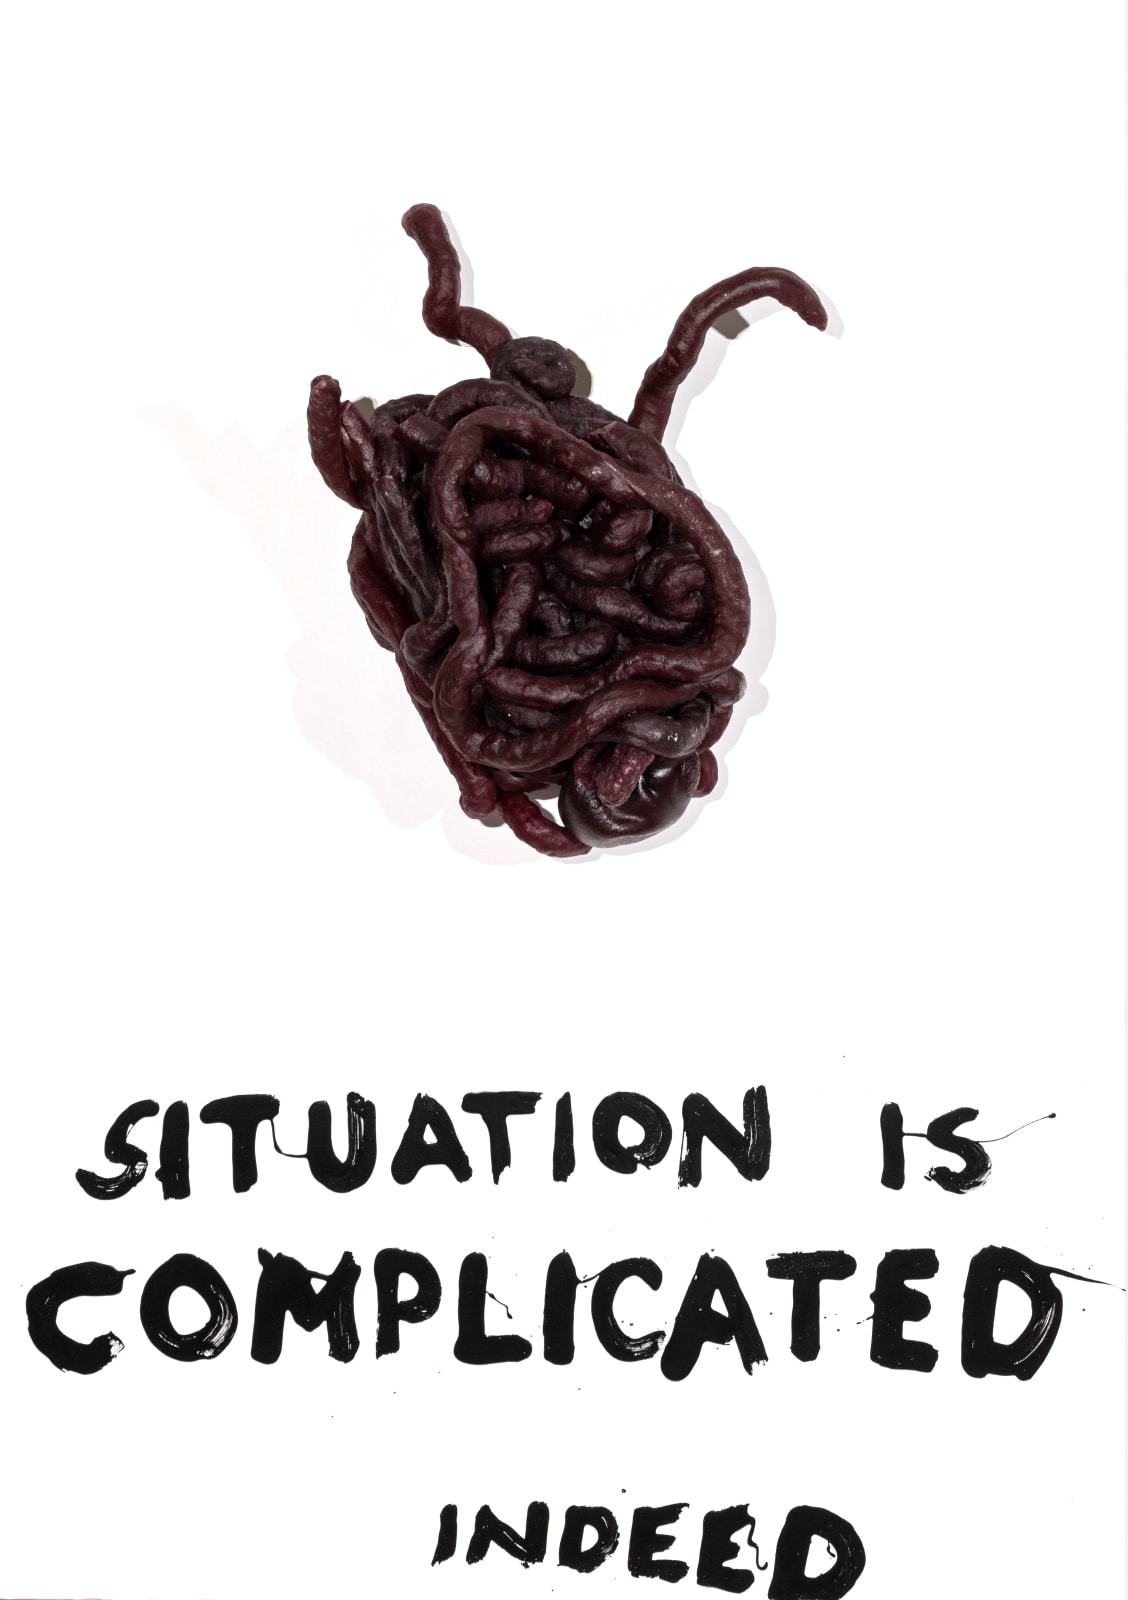 Krištof Kintera, Situation is complicated indeed, 2019